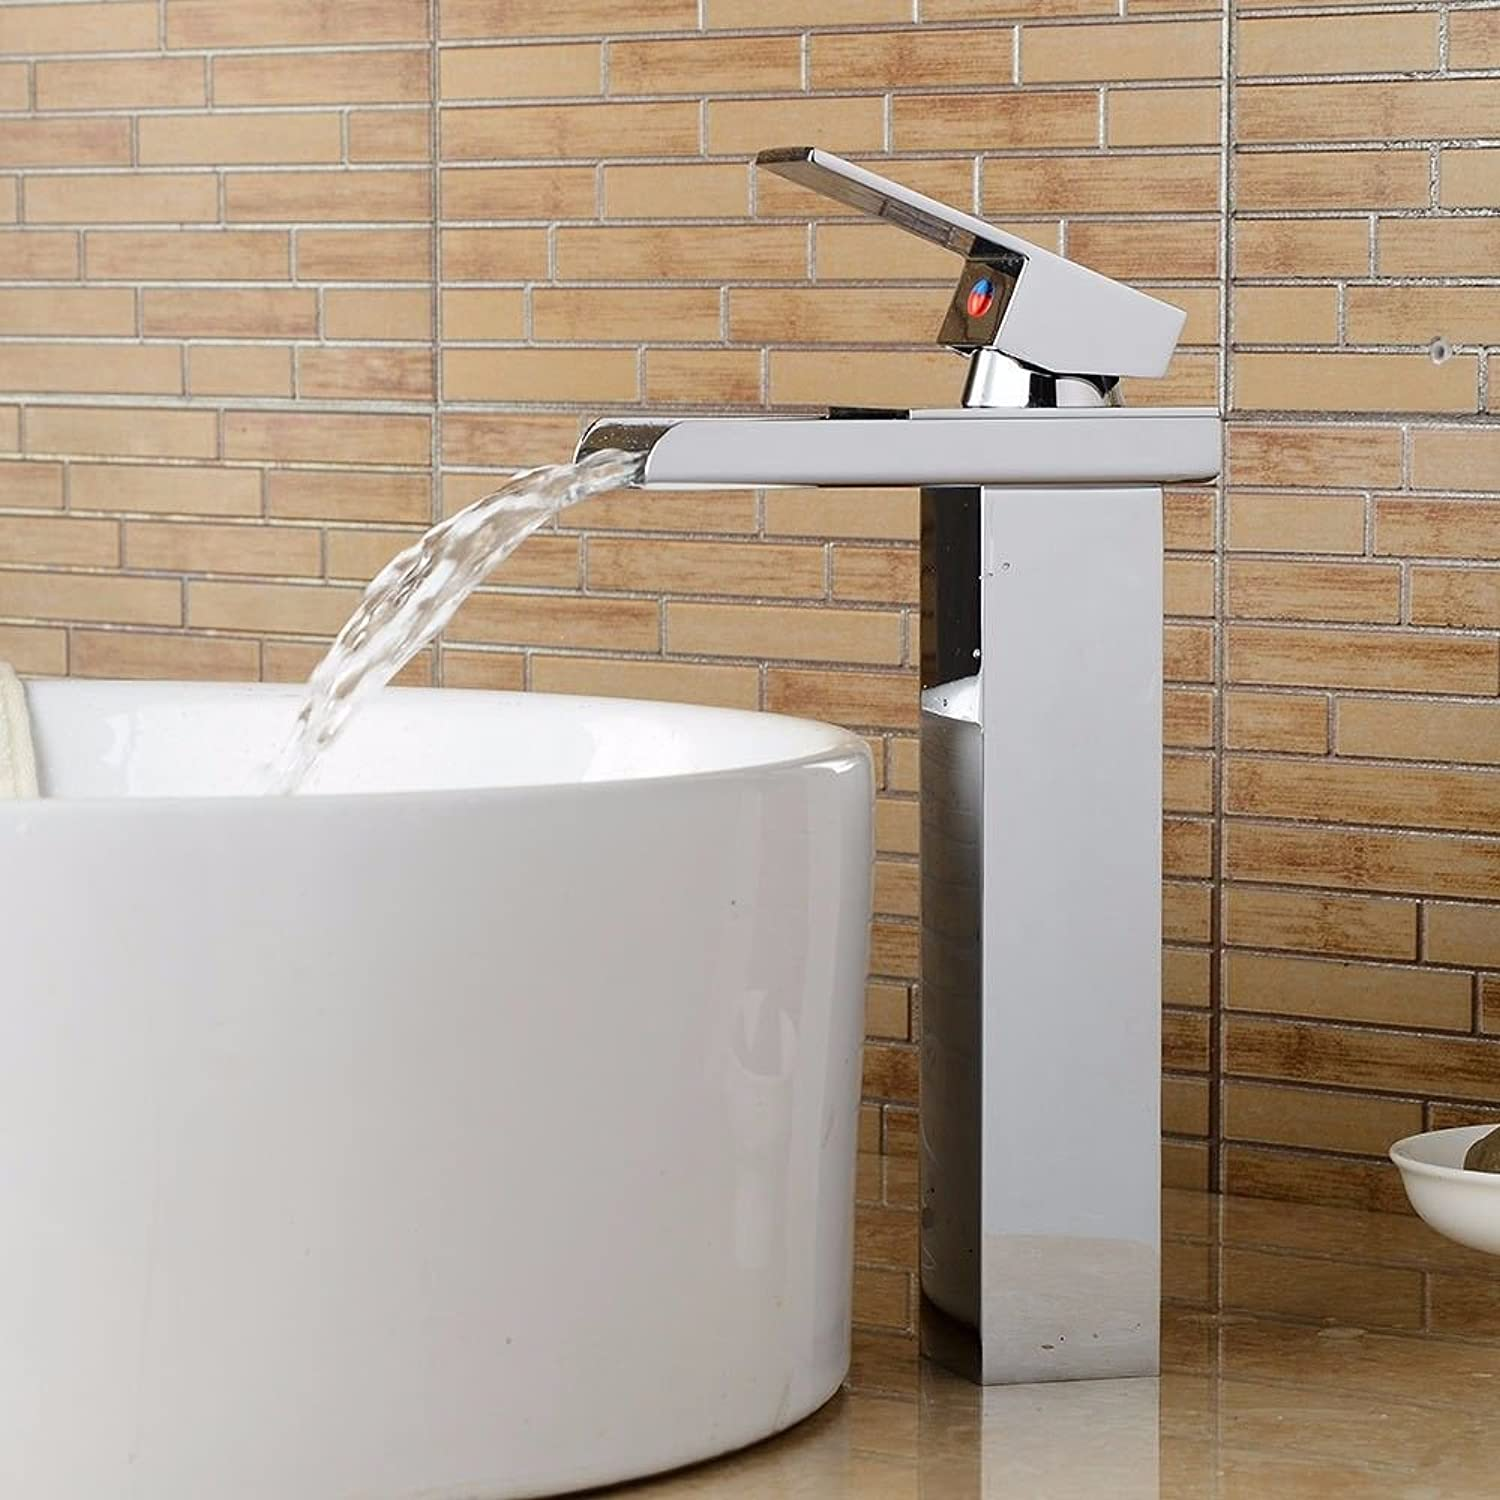 Lpophy Bathroom Sink Mixer Taps Faucet Bath Waterfall Cold And Hot Water Tap For Washroom Bathroom And Kitchen Modern Electroplating Hot And Cold Water Waterfall Single Hole Single Handle Ceramic Valve